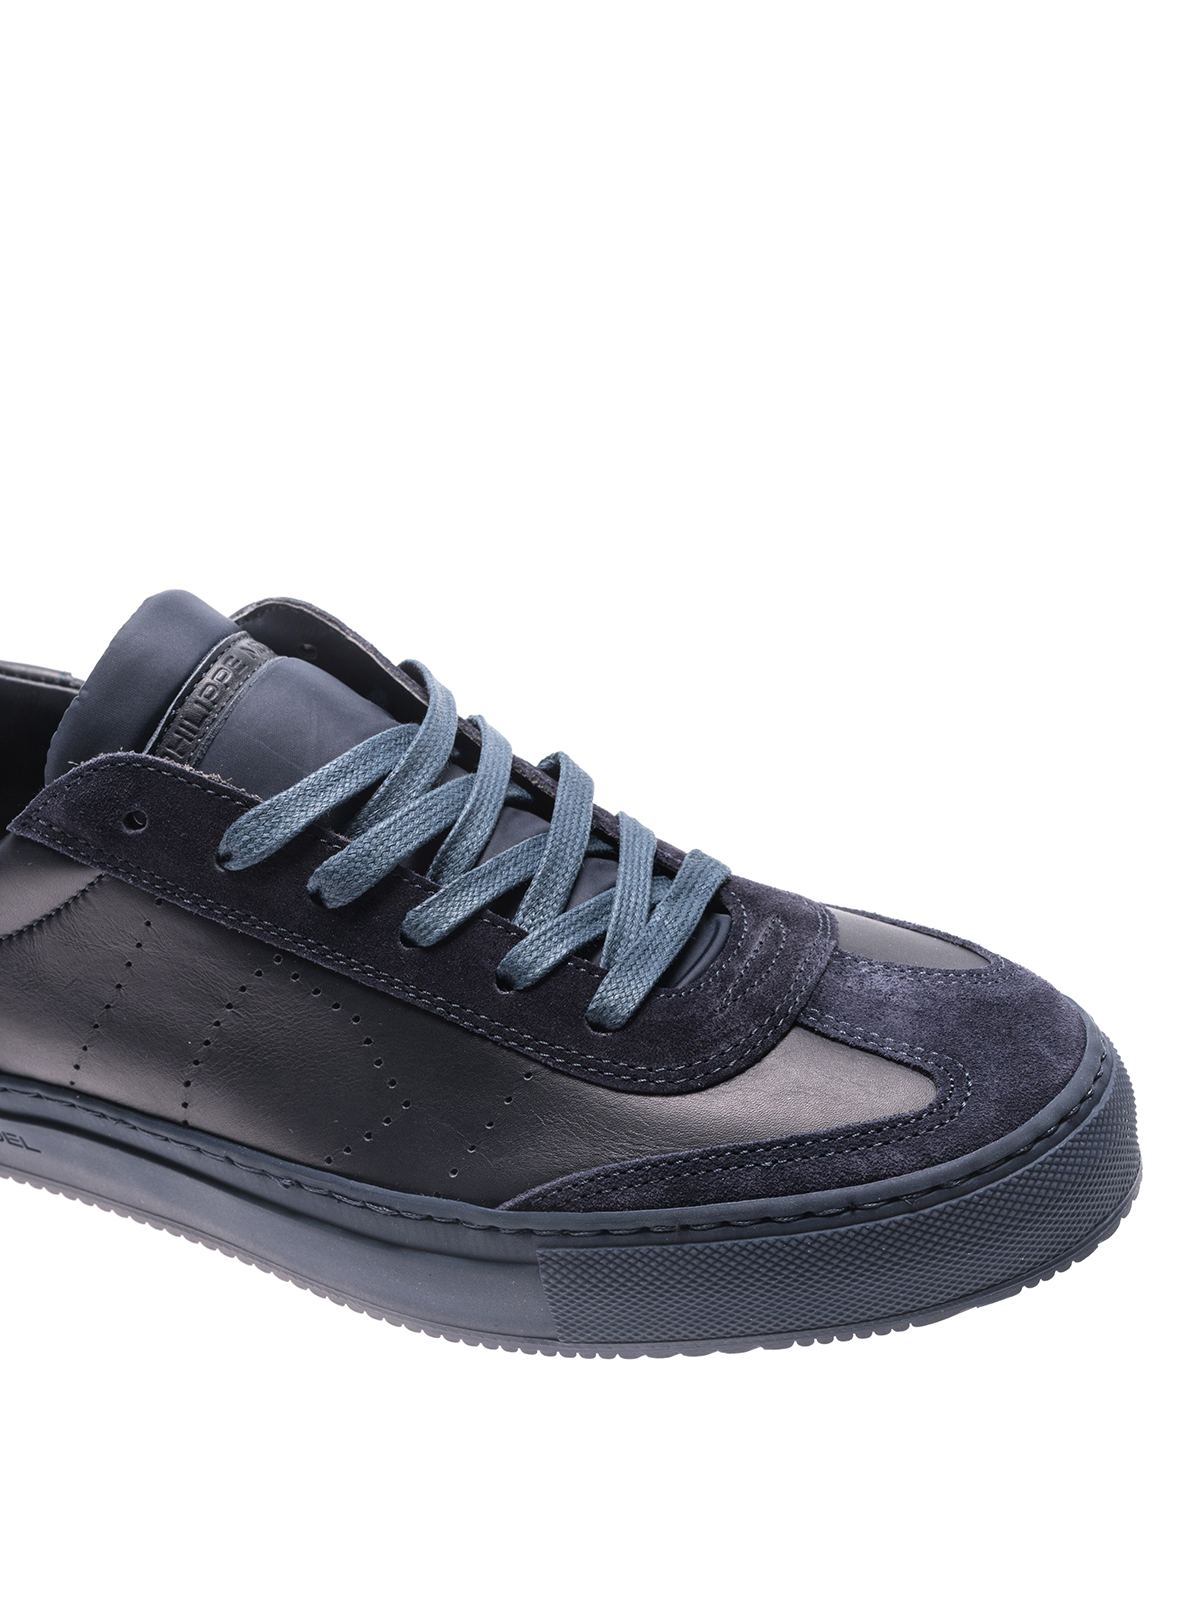 Belleville sneakers - Blue Philippe Model Sale Fast Delivery Cheap Buy Authentic Manchester Cheap Price Manchester Great Sale Cheap Online Ebay Cheap Online XQyqV